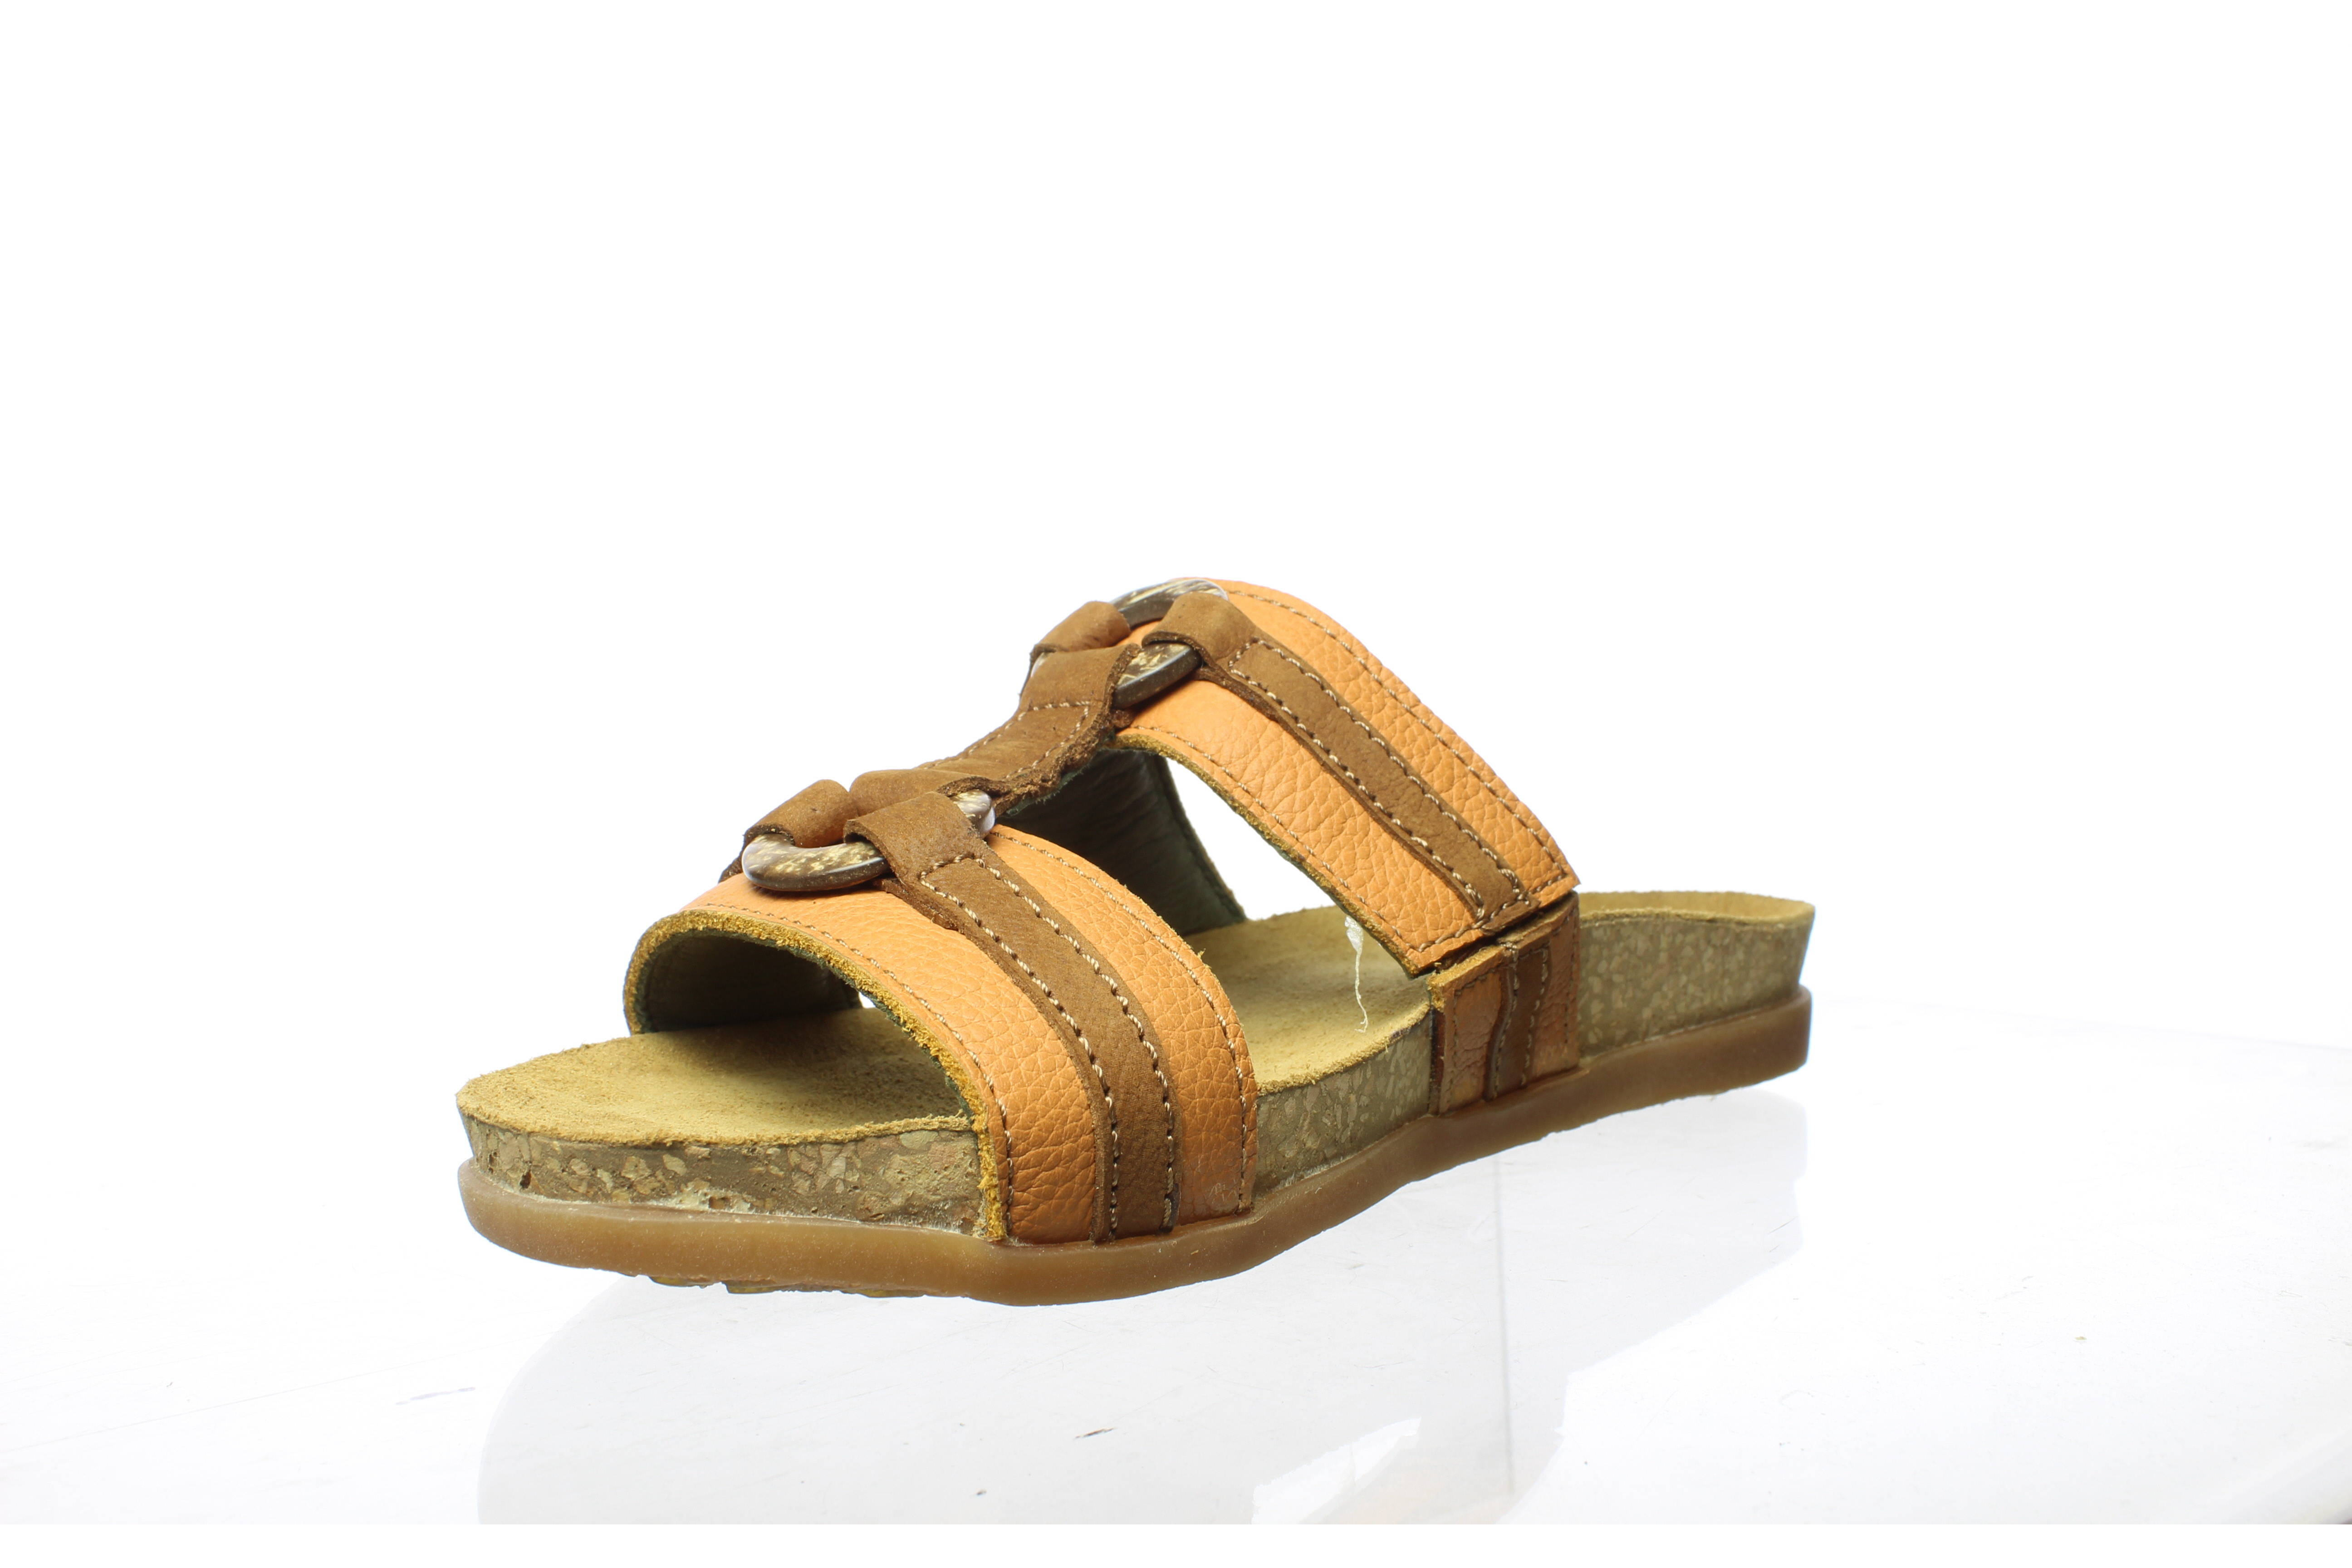 Mens Luxury Real Leather /& Suede Sturdy Summer Sandals Strap Adjustment